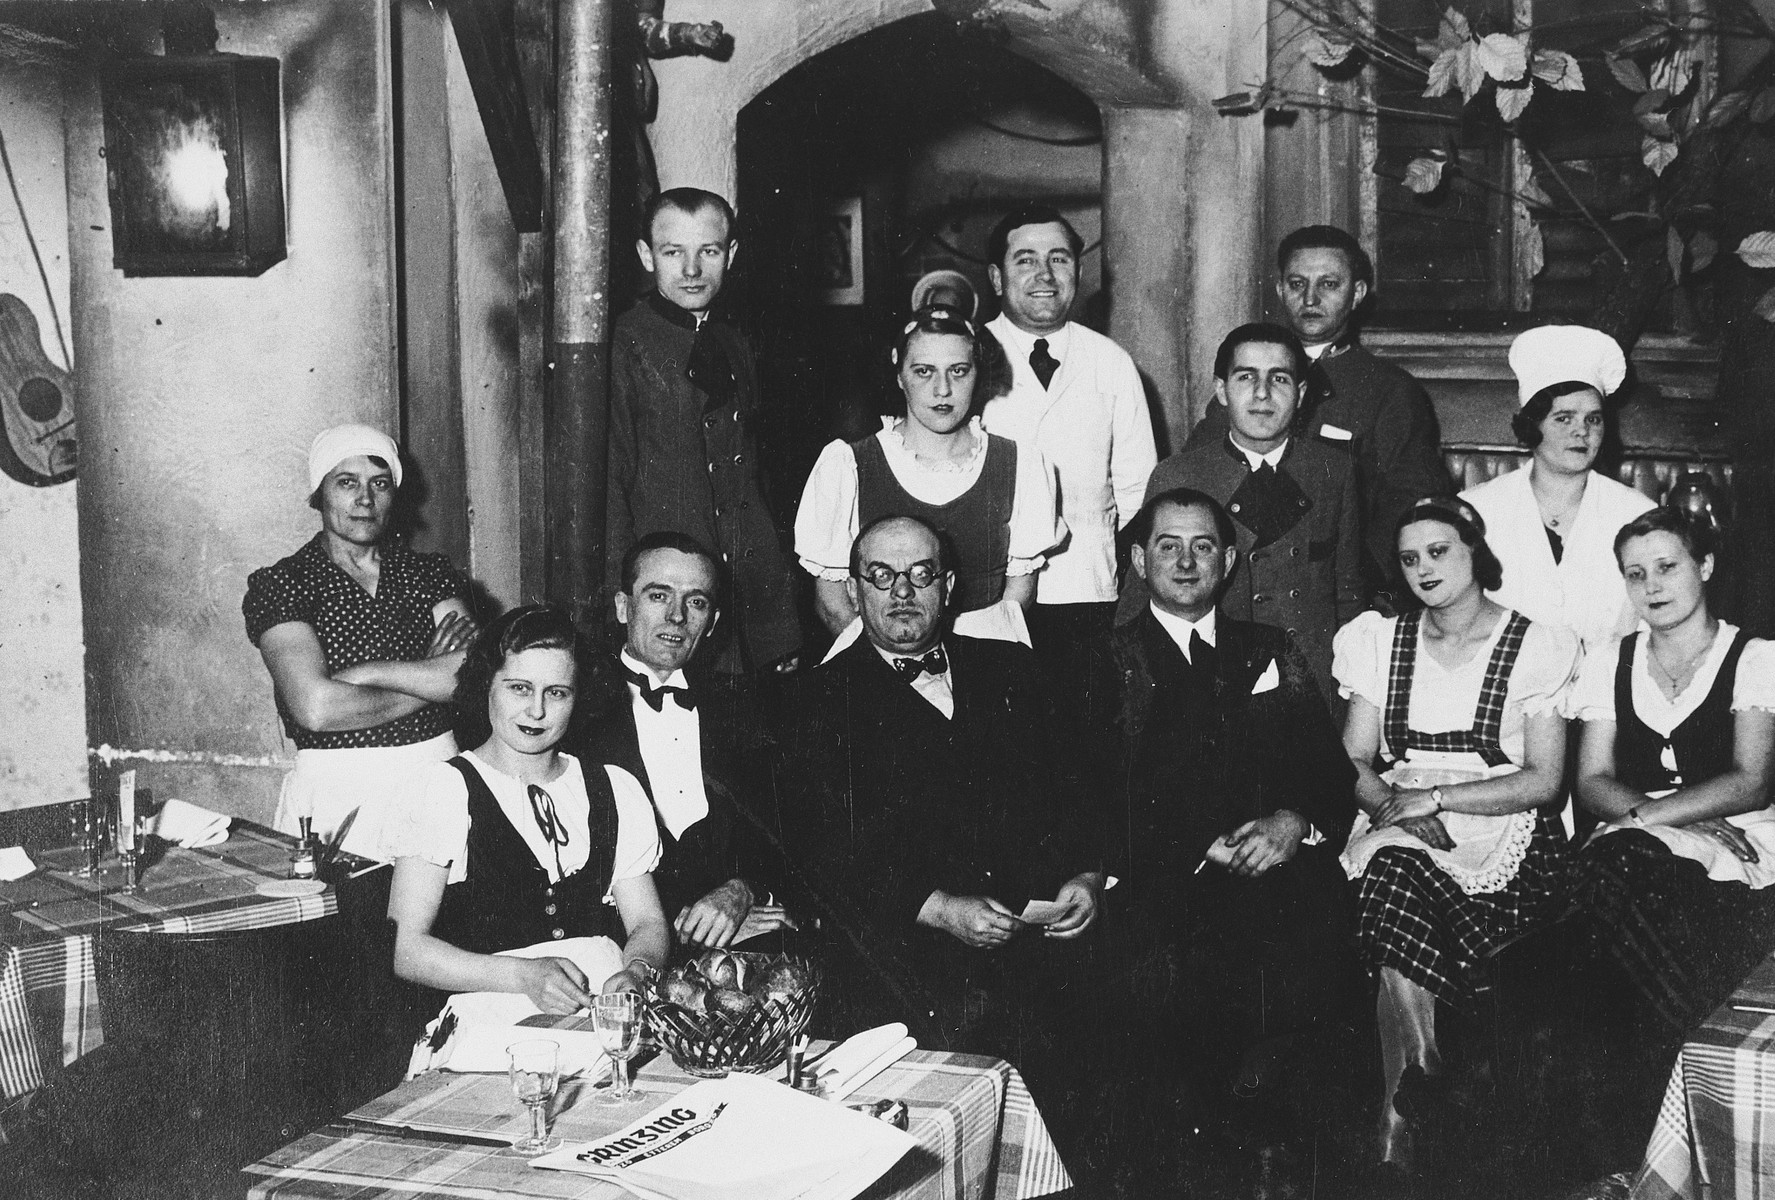 The staff of a kosher boarding home poses together in the dining room.  Ignatz Frankel is in the center wearing a bow tie and glasses.